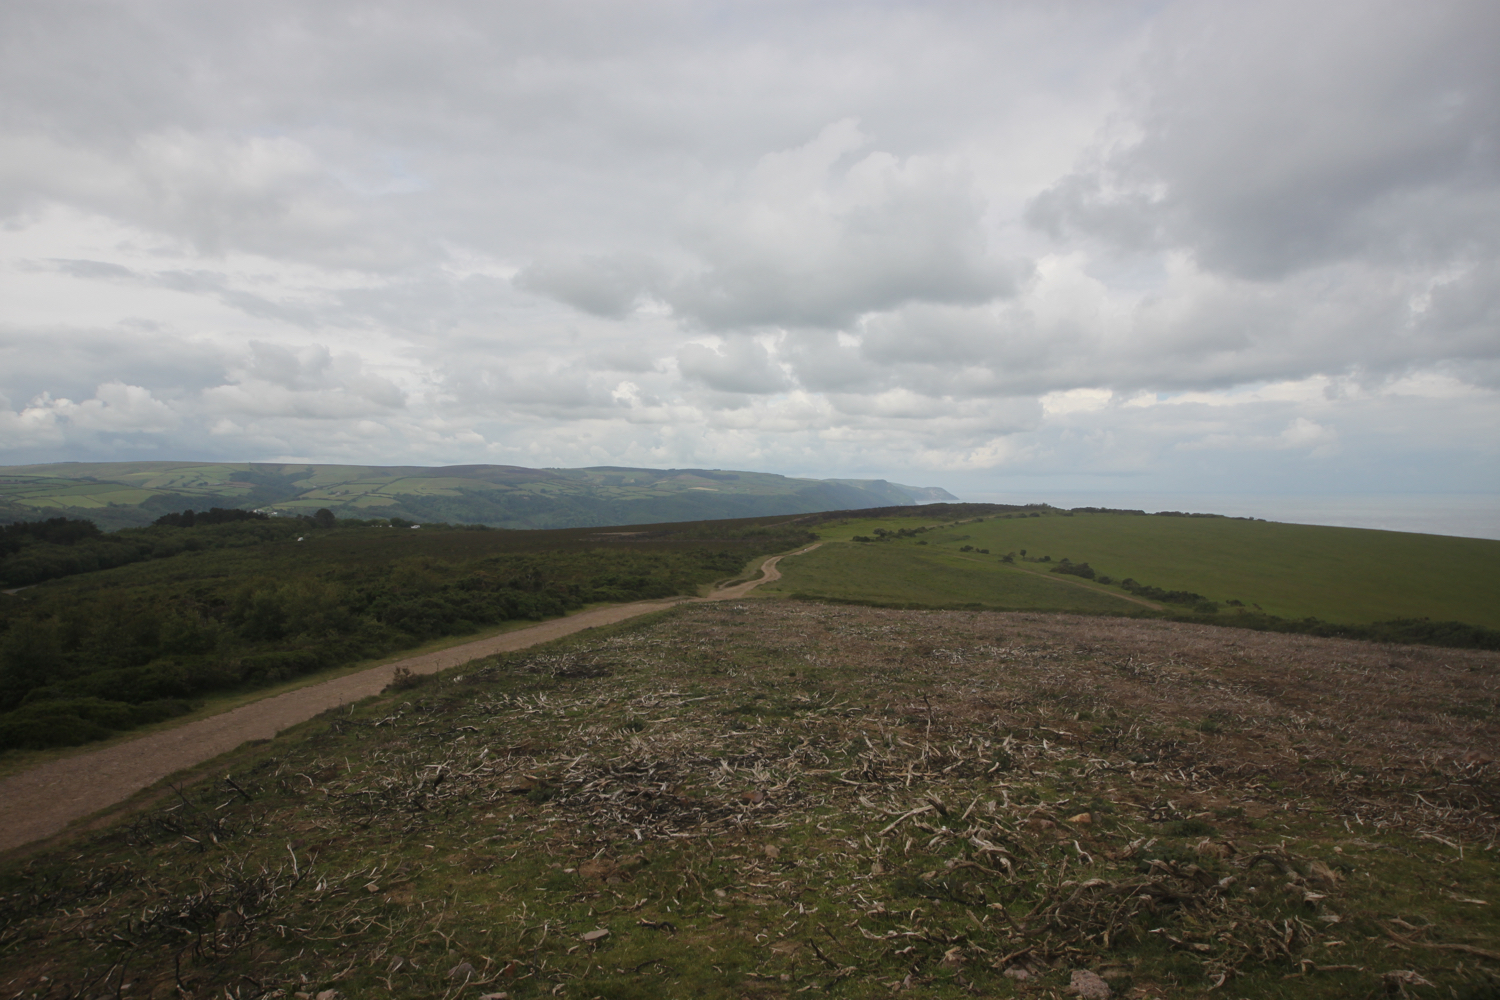 the (murky) view from selworthy beacon